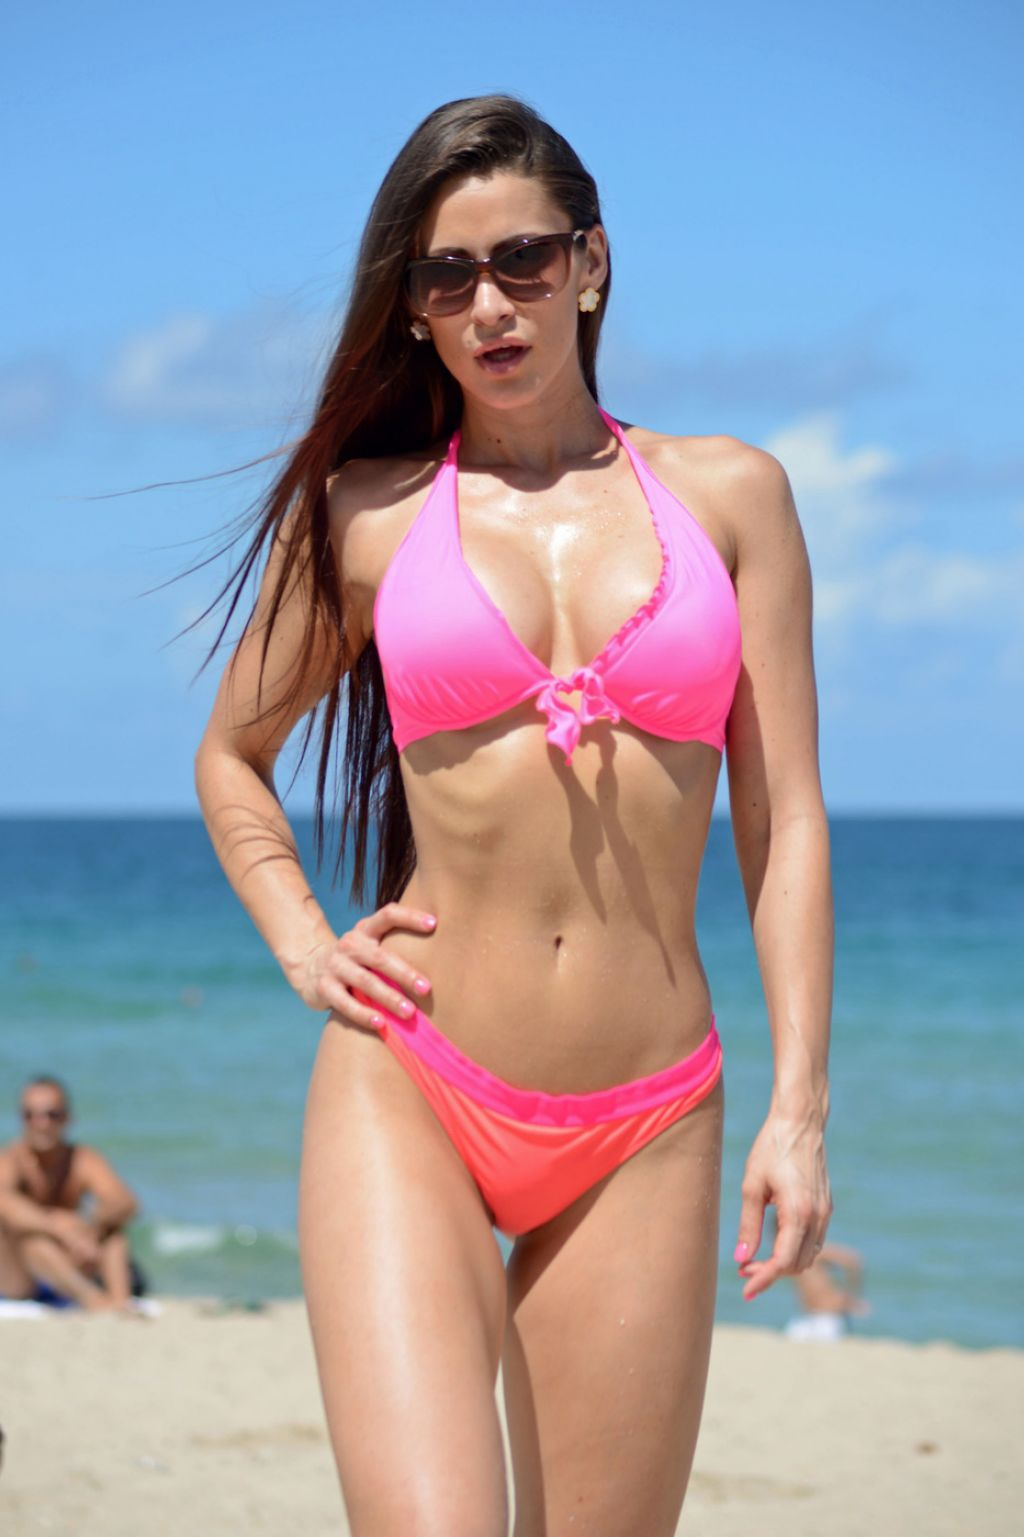 Anais Zanotti Bikini Pics - Miami, July 2014 - photo#20